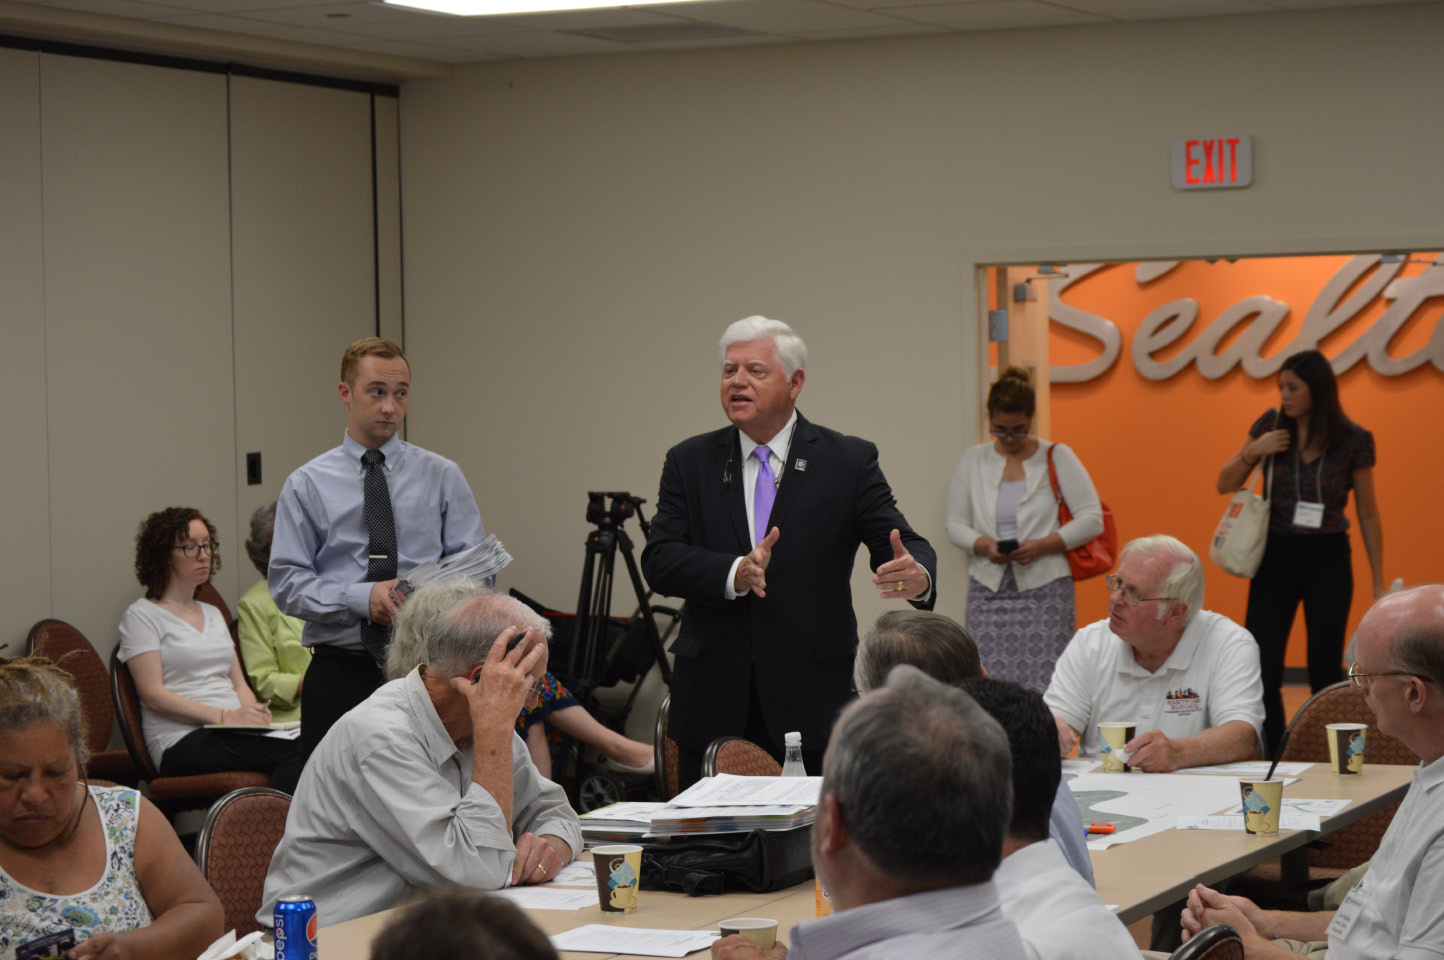 U.S. Rep. John Larson, D-1, makes his pitch for tunneling interestates 84 and 91 during a meeting Thursday in Hartford on the Department of Transportation